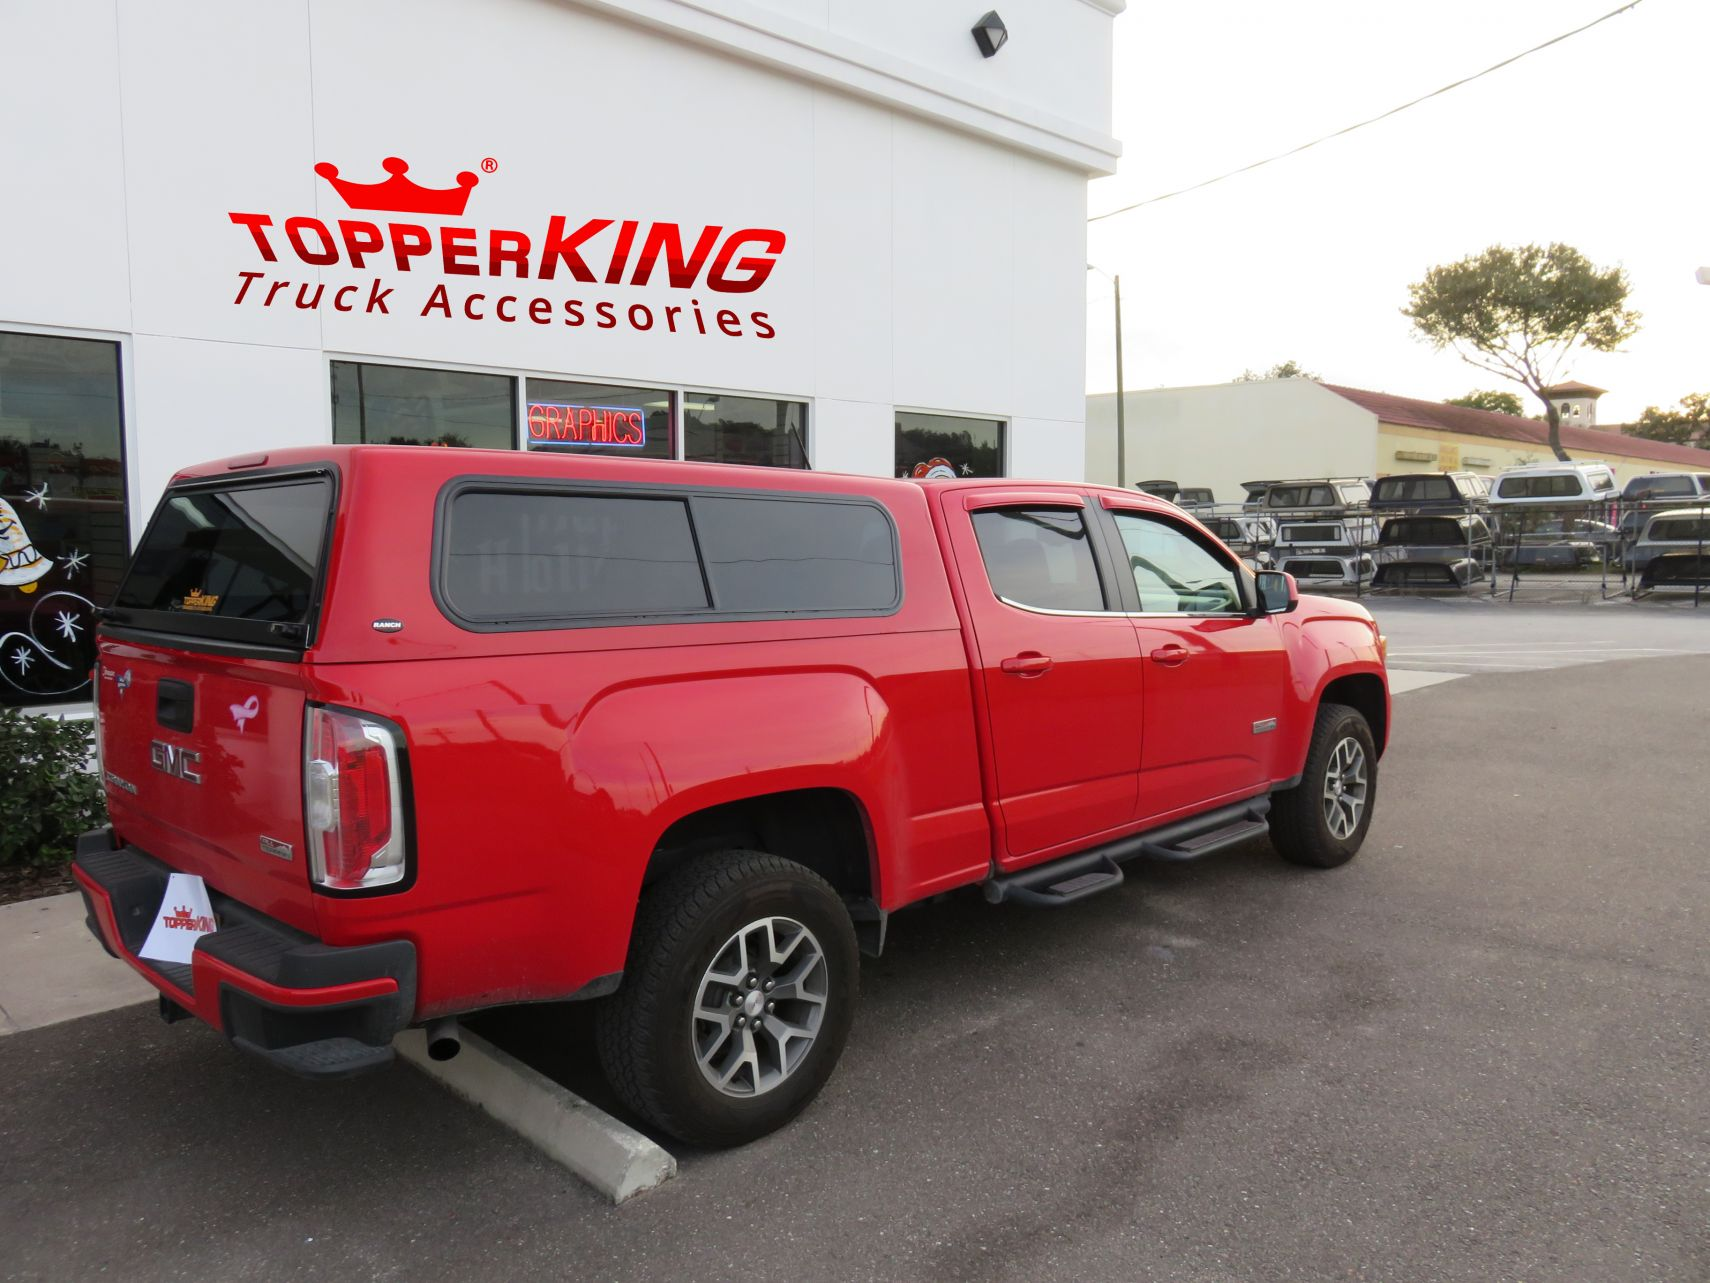 GMC Canyon Ranch Sierrafiberglass topper and a custom hitch by TopperKING in Brandon, FL 813-689-2449 Call today to start on your truck!